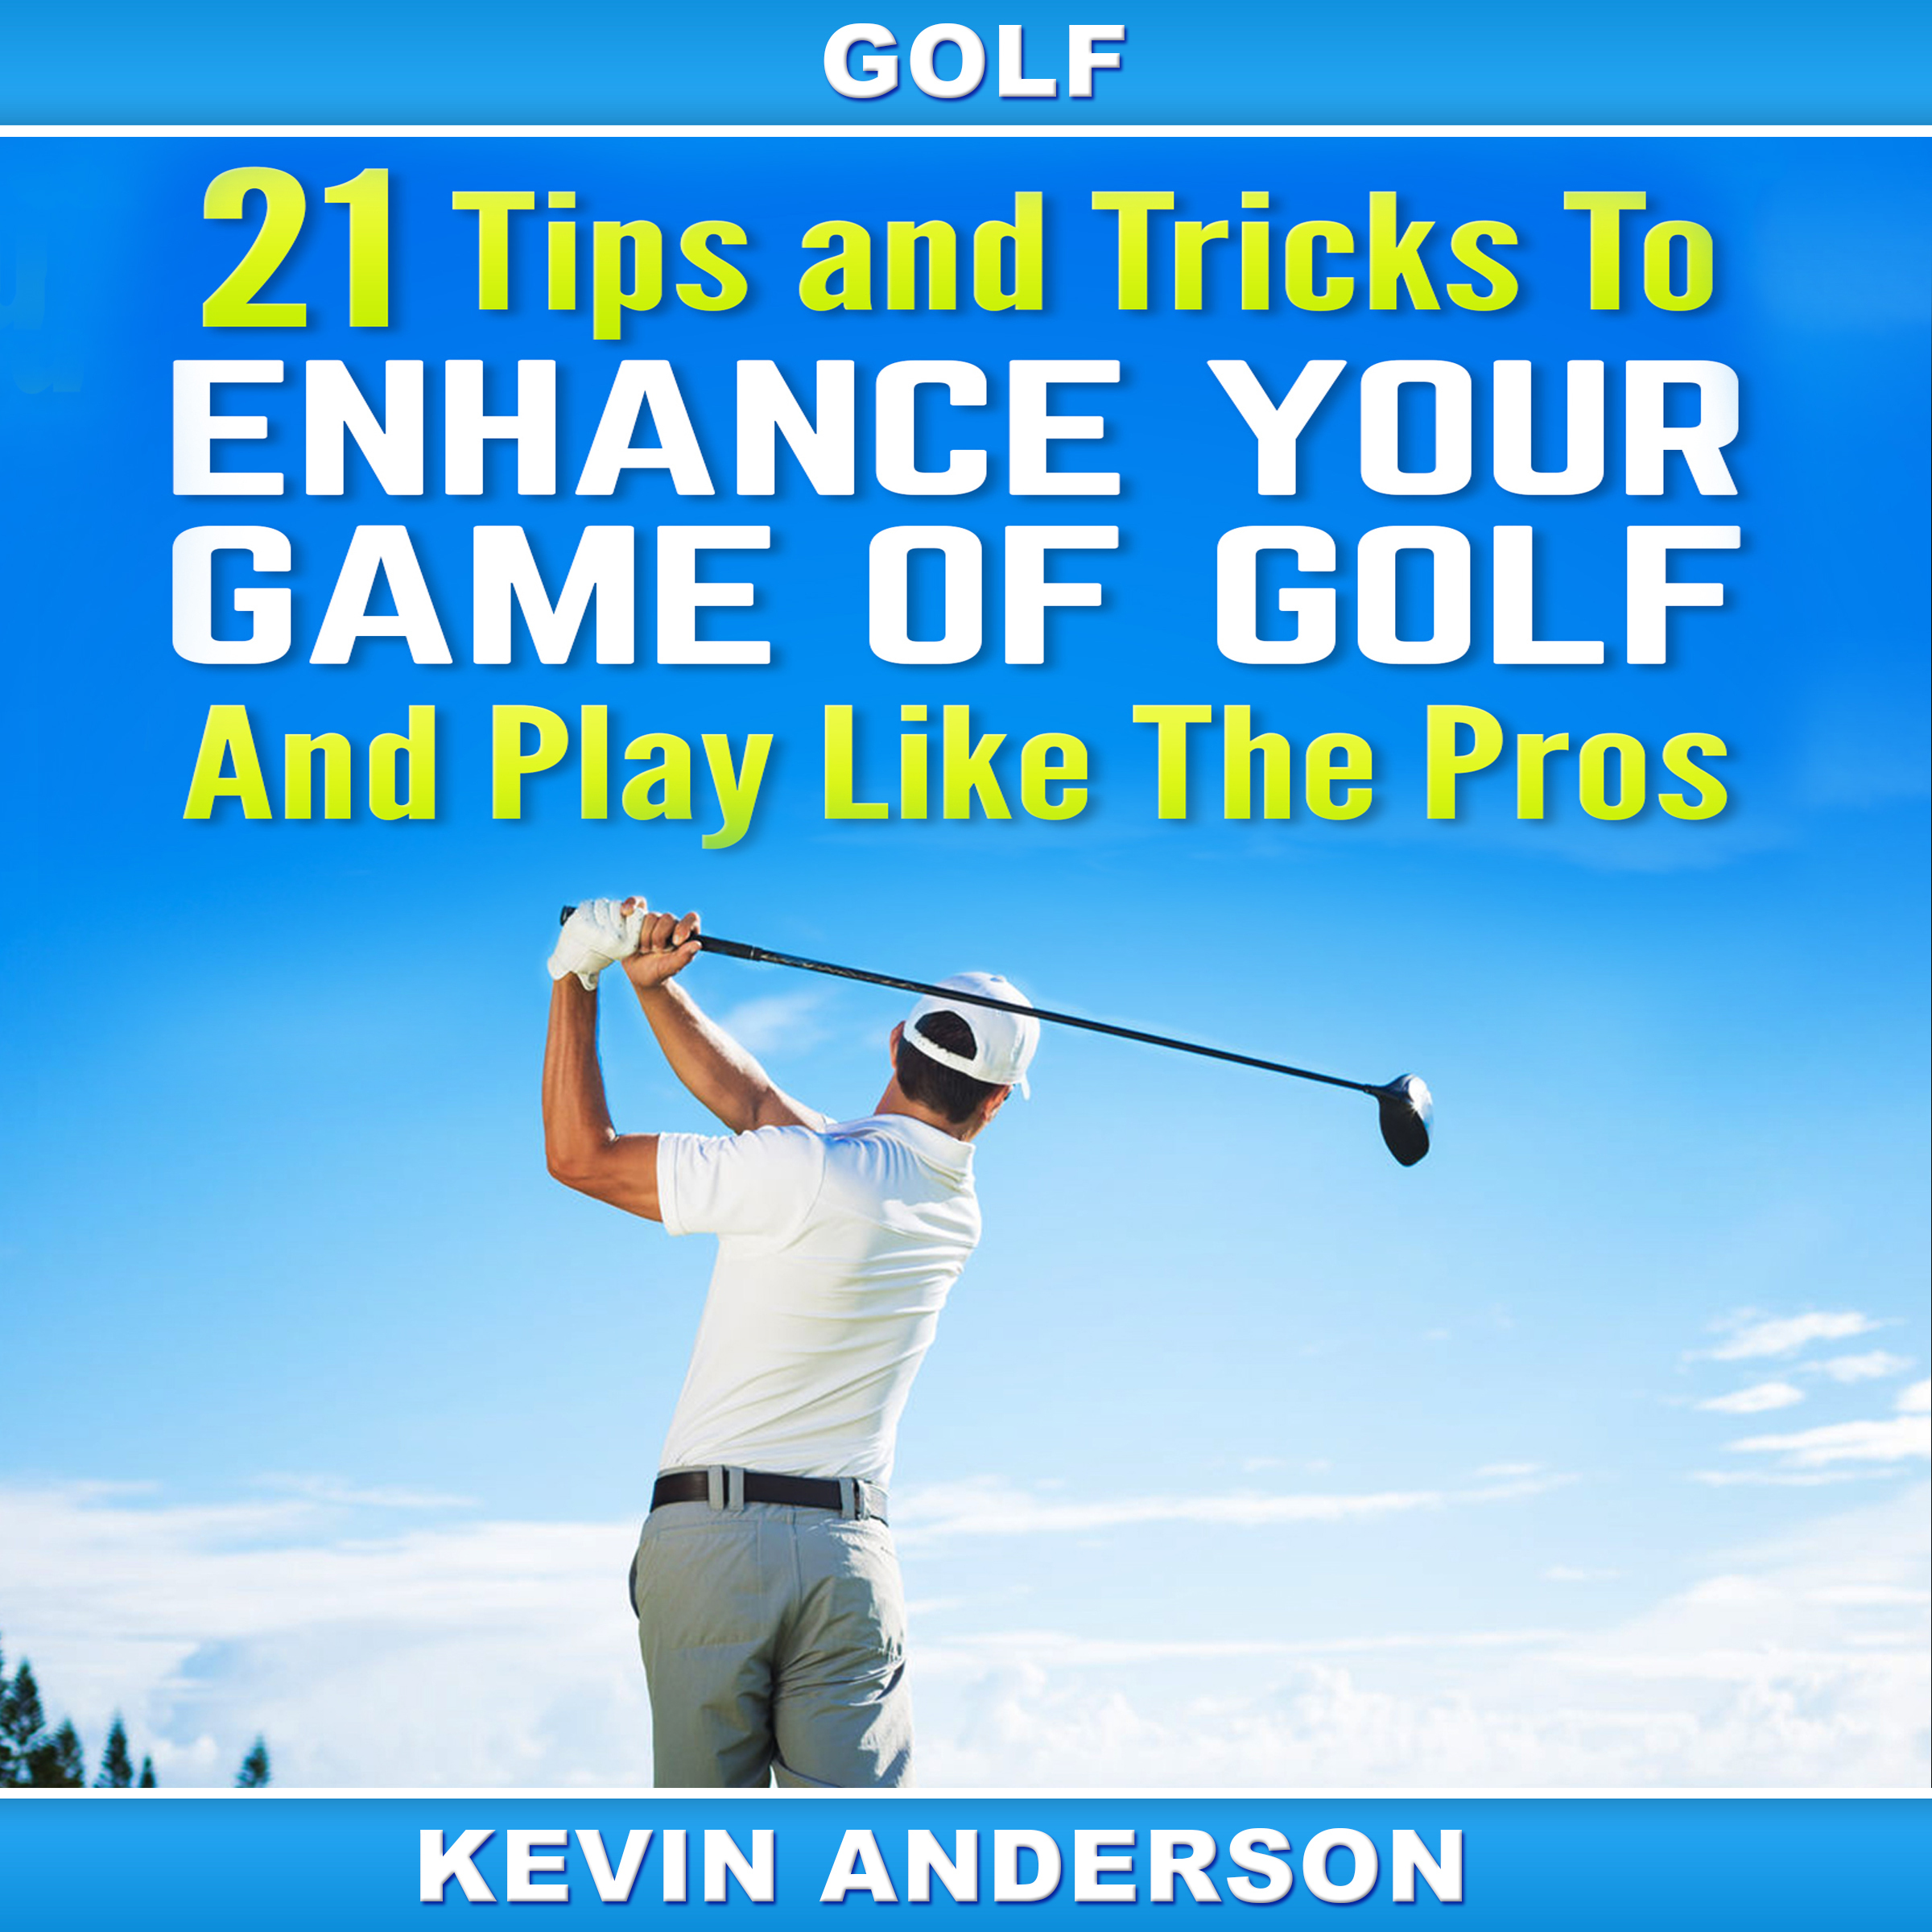 Printable Golf: 21 Tips and Tricks to Enhance Your Game of Golf And Play Like the Pros Audiobook Cover Art